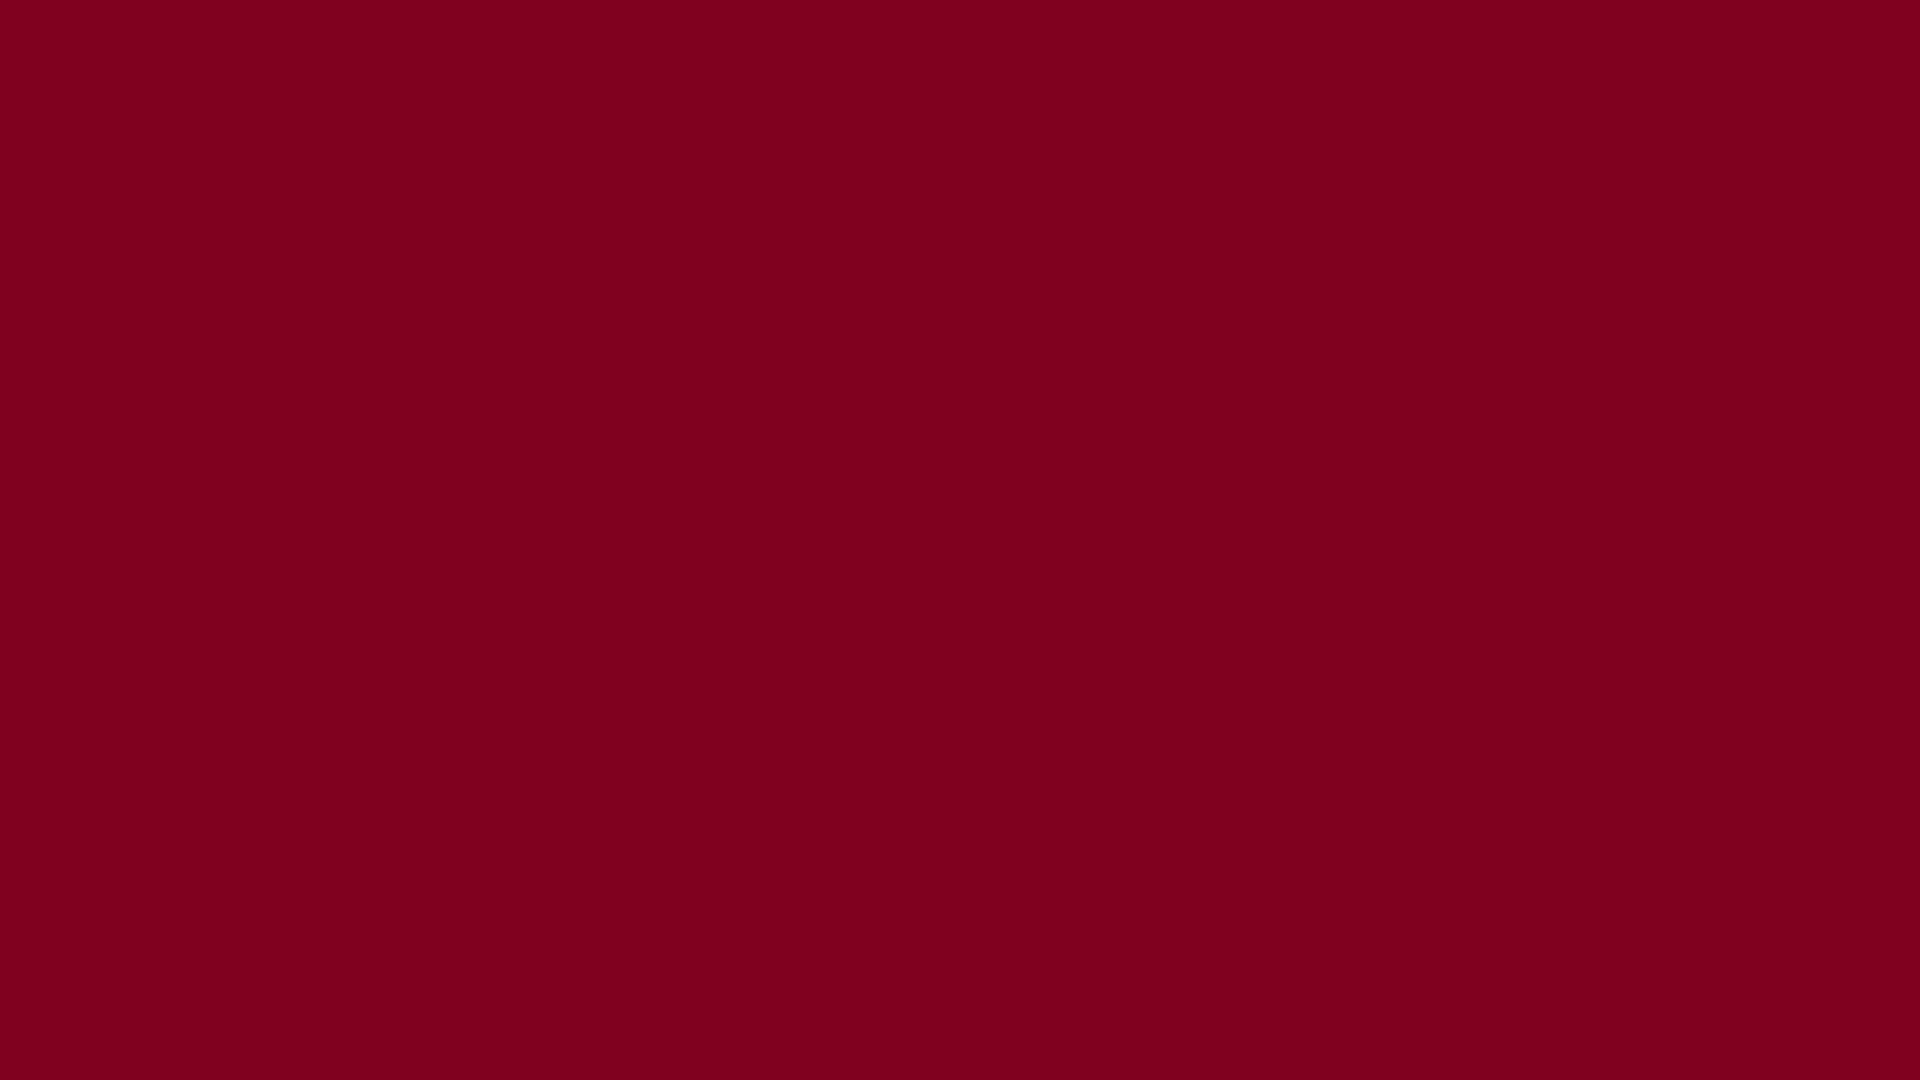 1920x1080 Burgundy Solid Color Background 1920x1080